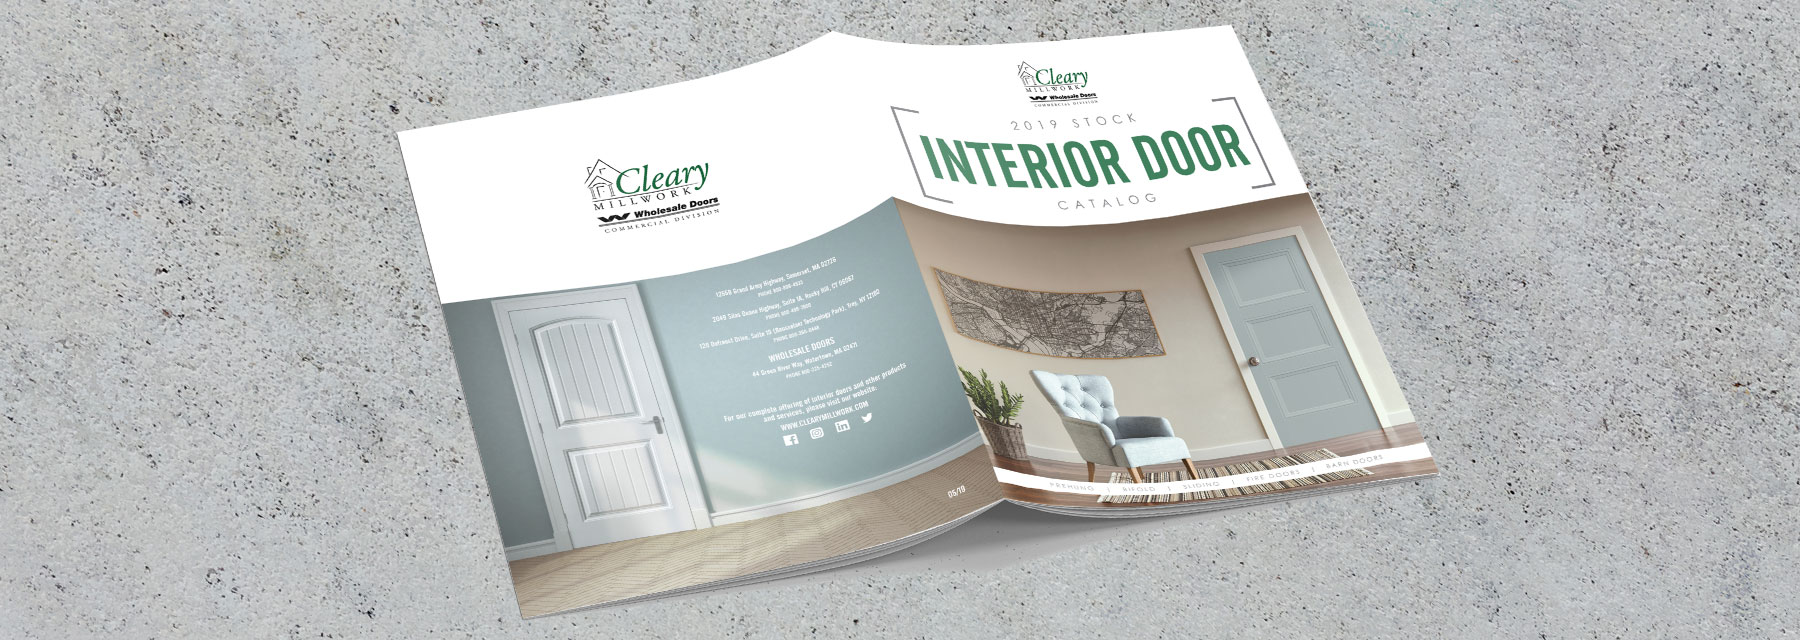 2019 Stock Interior Door Catalog